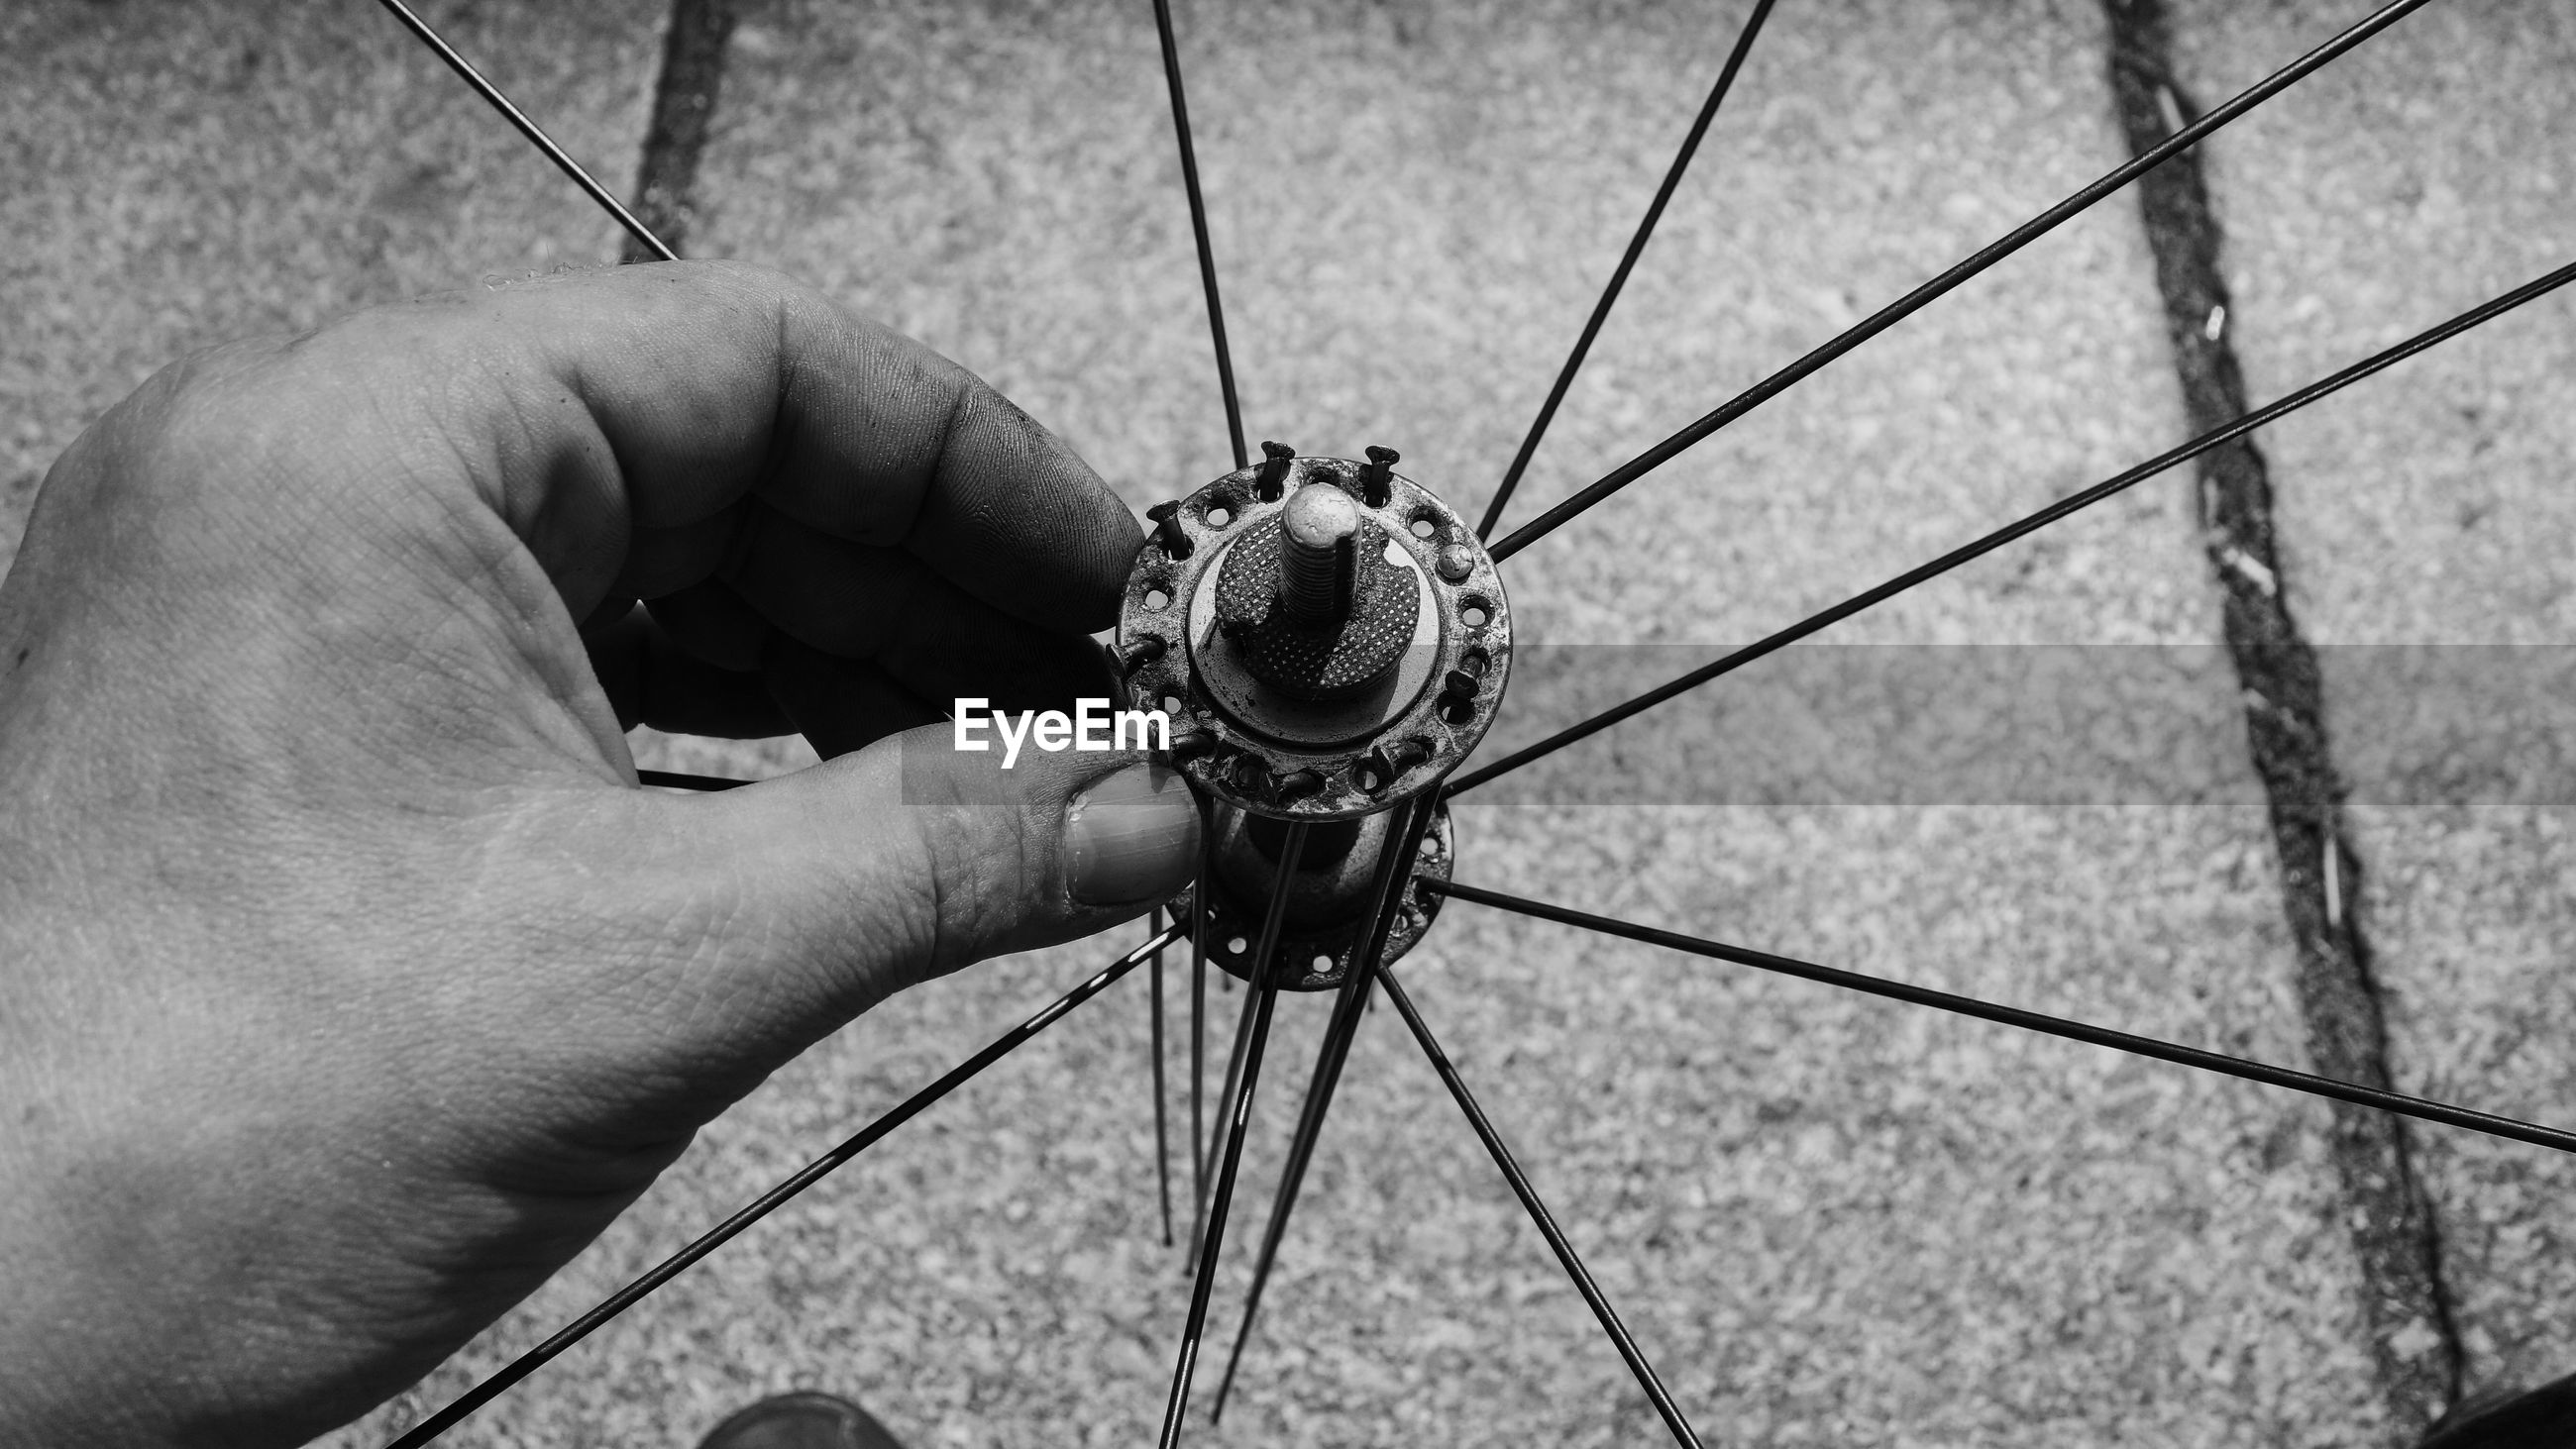 Close-up of male hand touching bicycle wheel hub